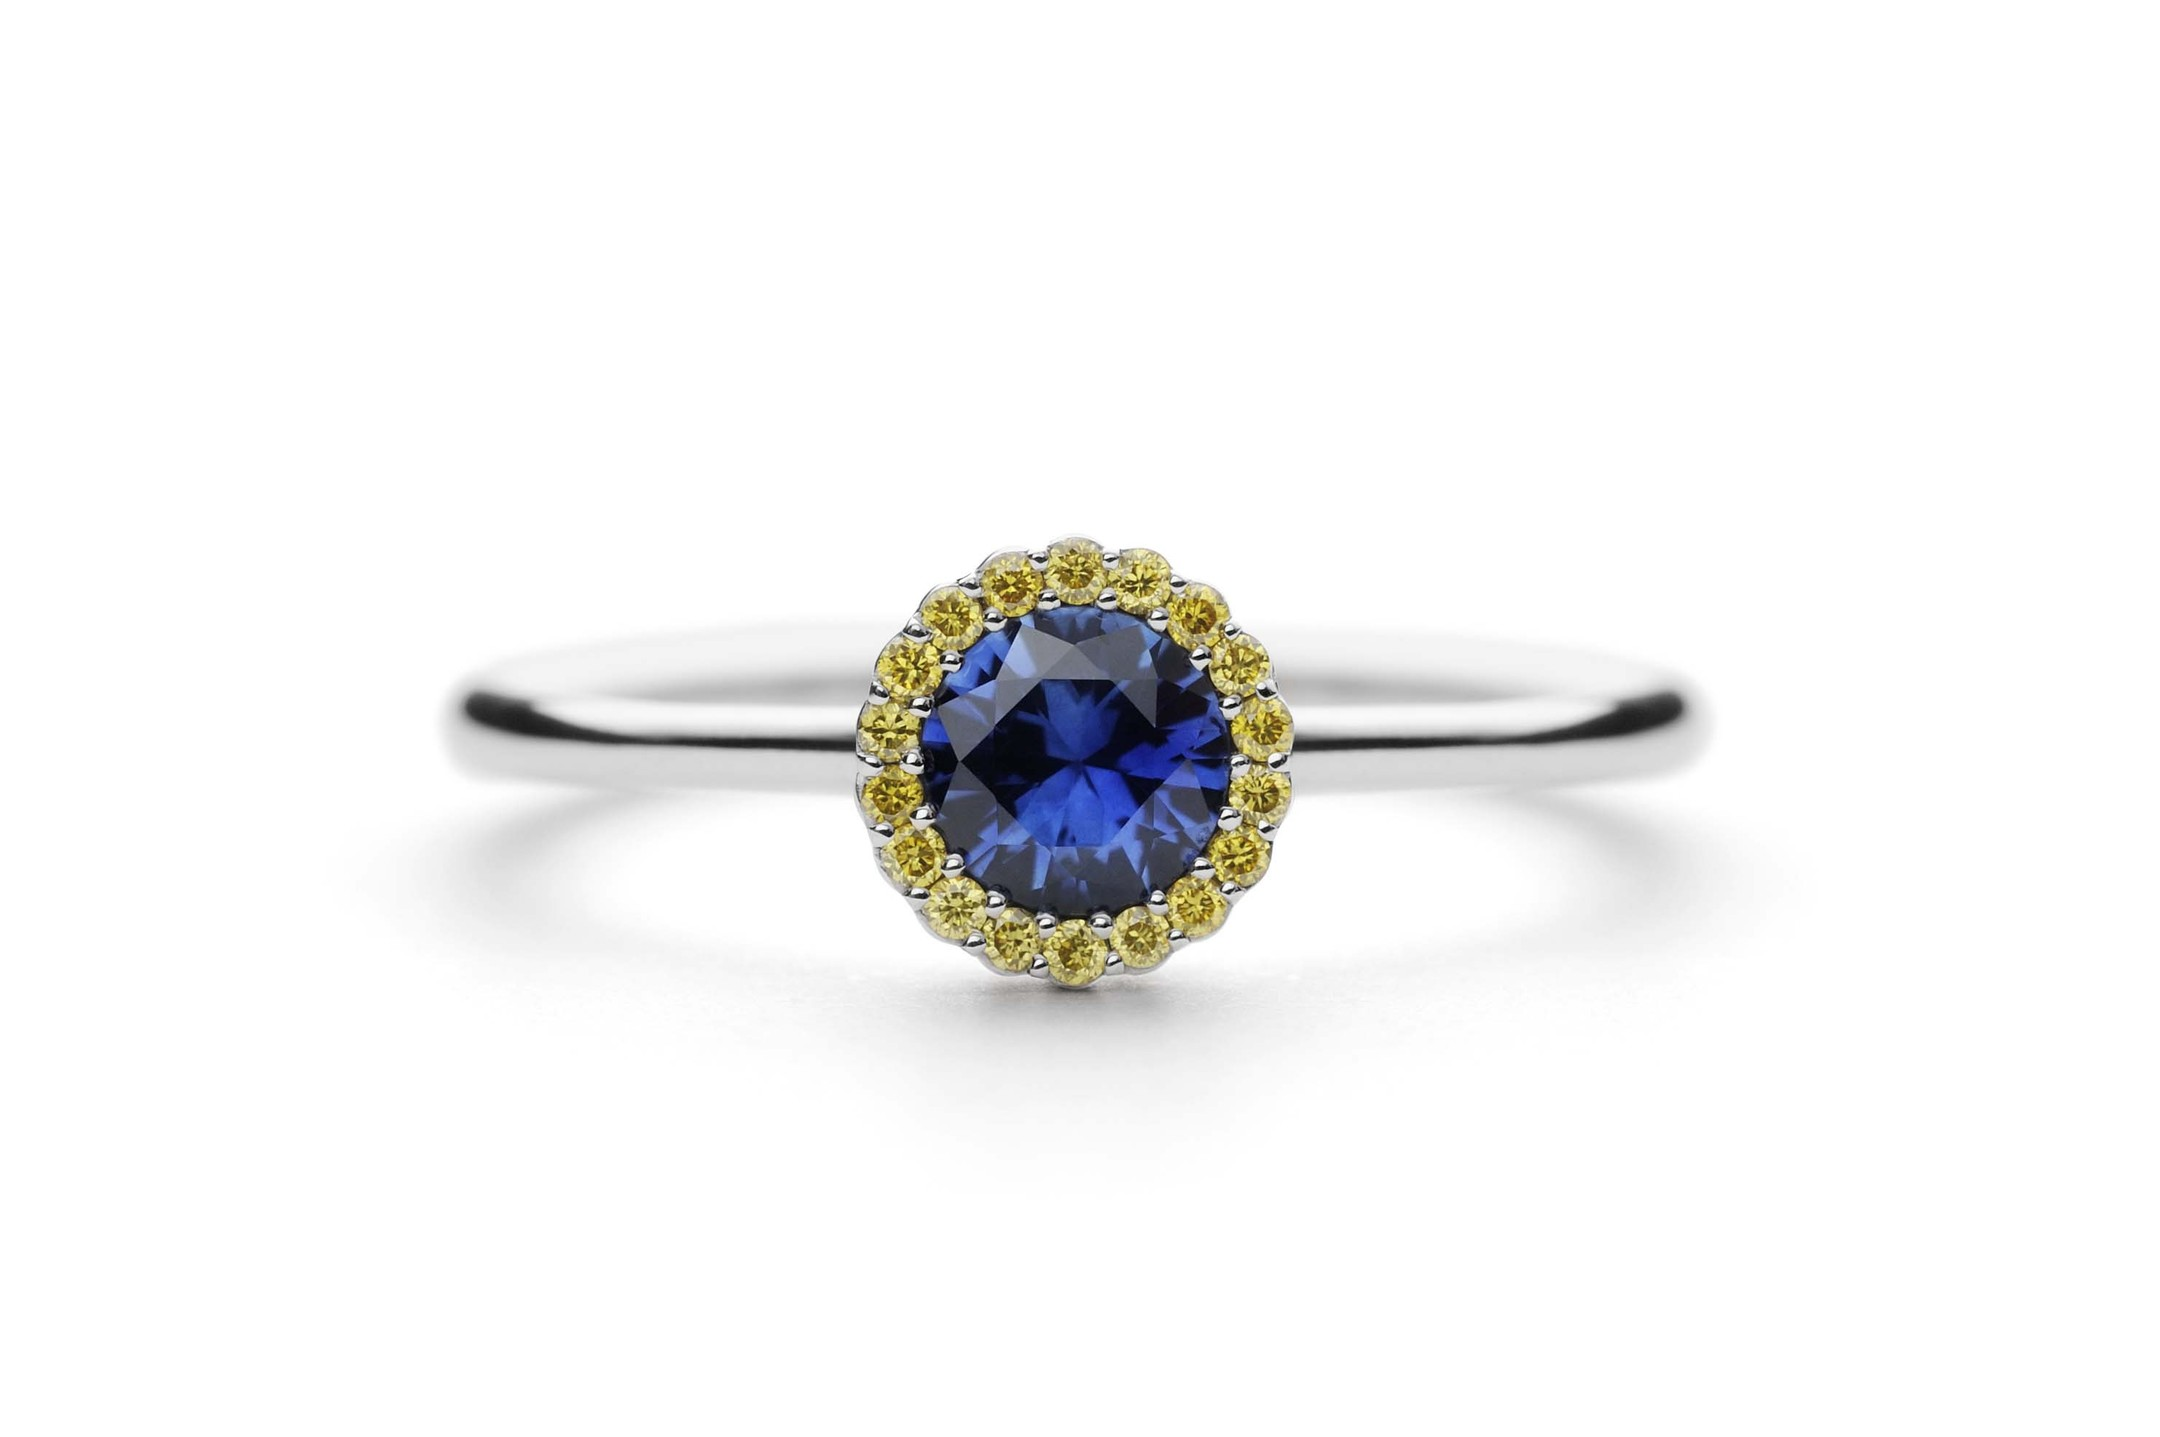 Andrew Geoghegan Cannelé engagement ring in white gold with a brilliant-cut blue sapphire encircled by yellow sapphires.